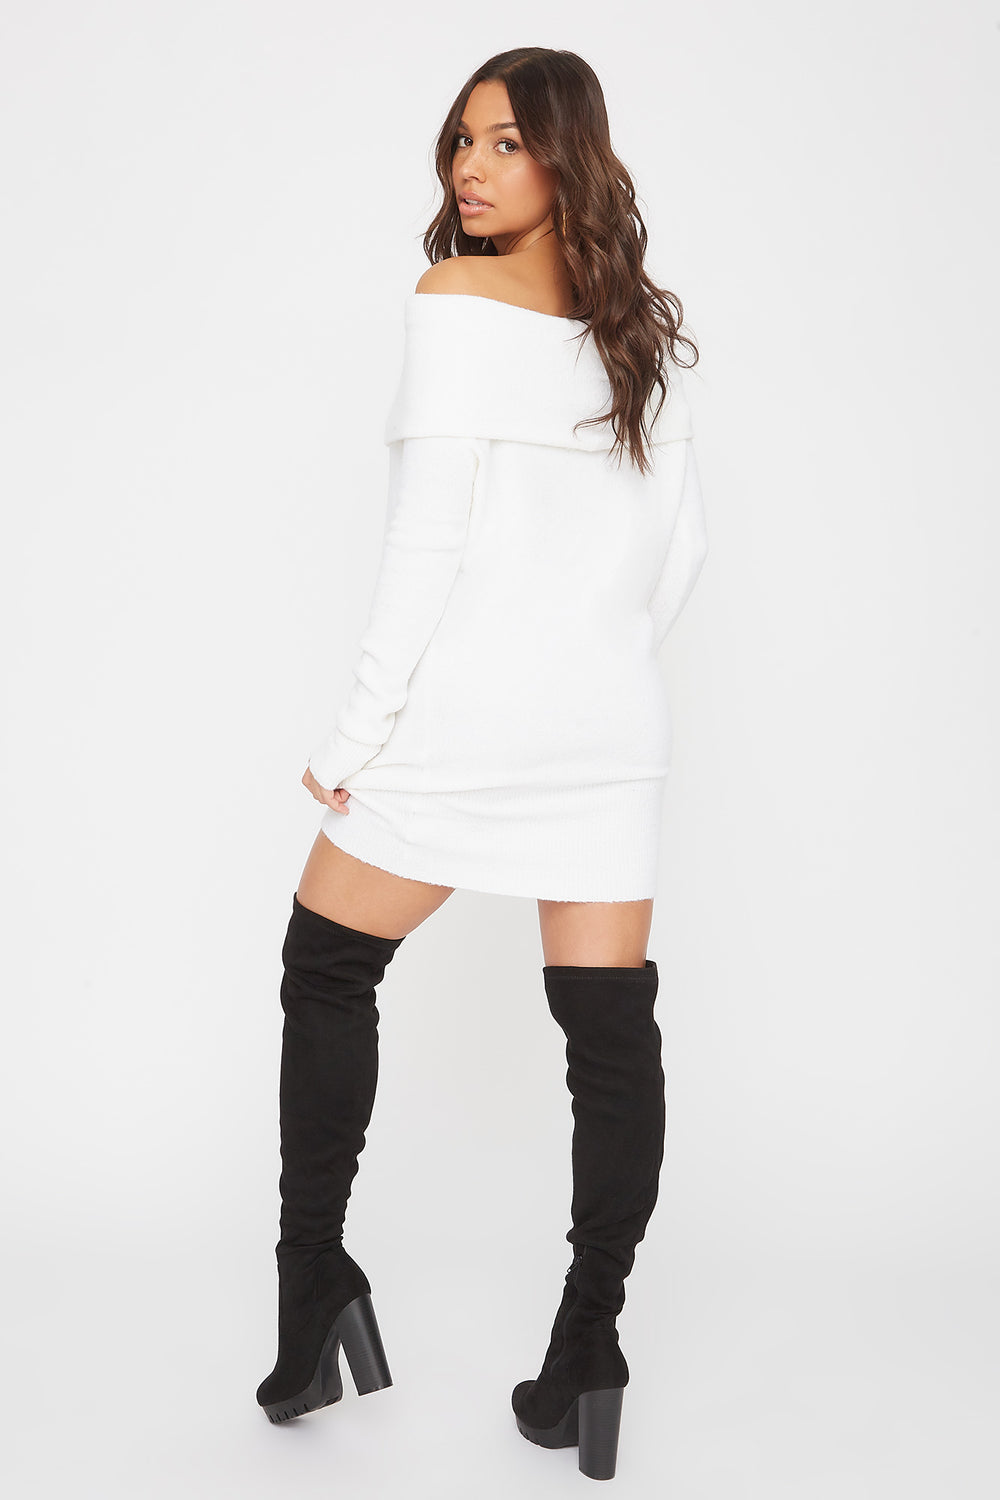 2-Way Mossy Cowl Neck Sweater Dress White